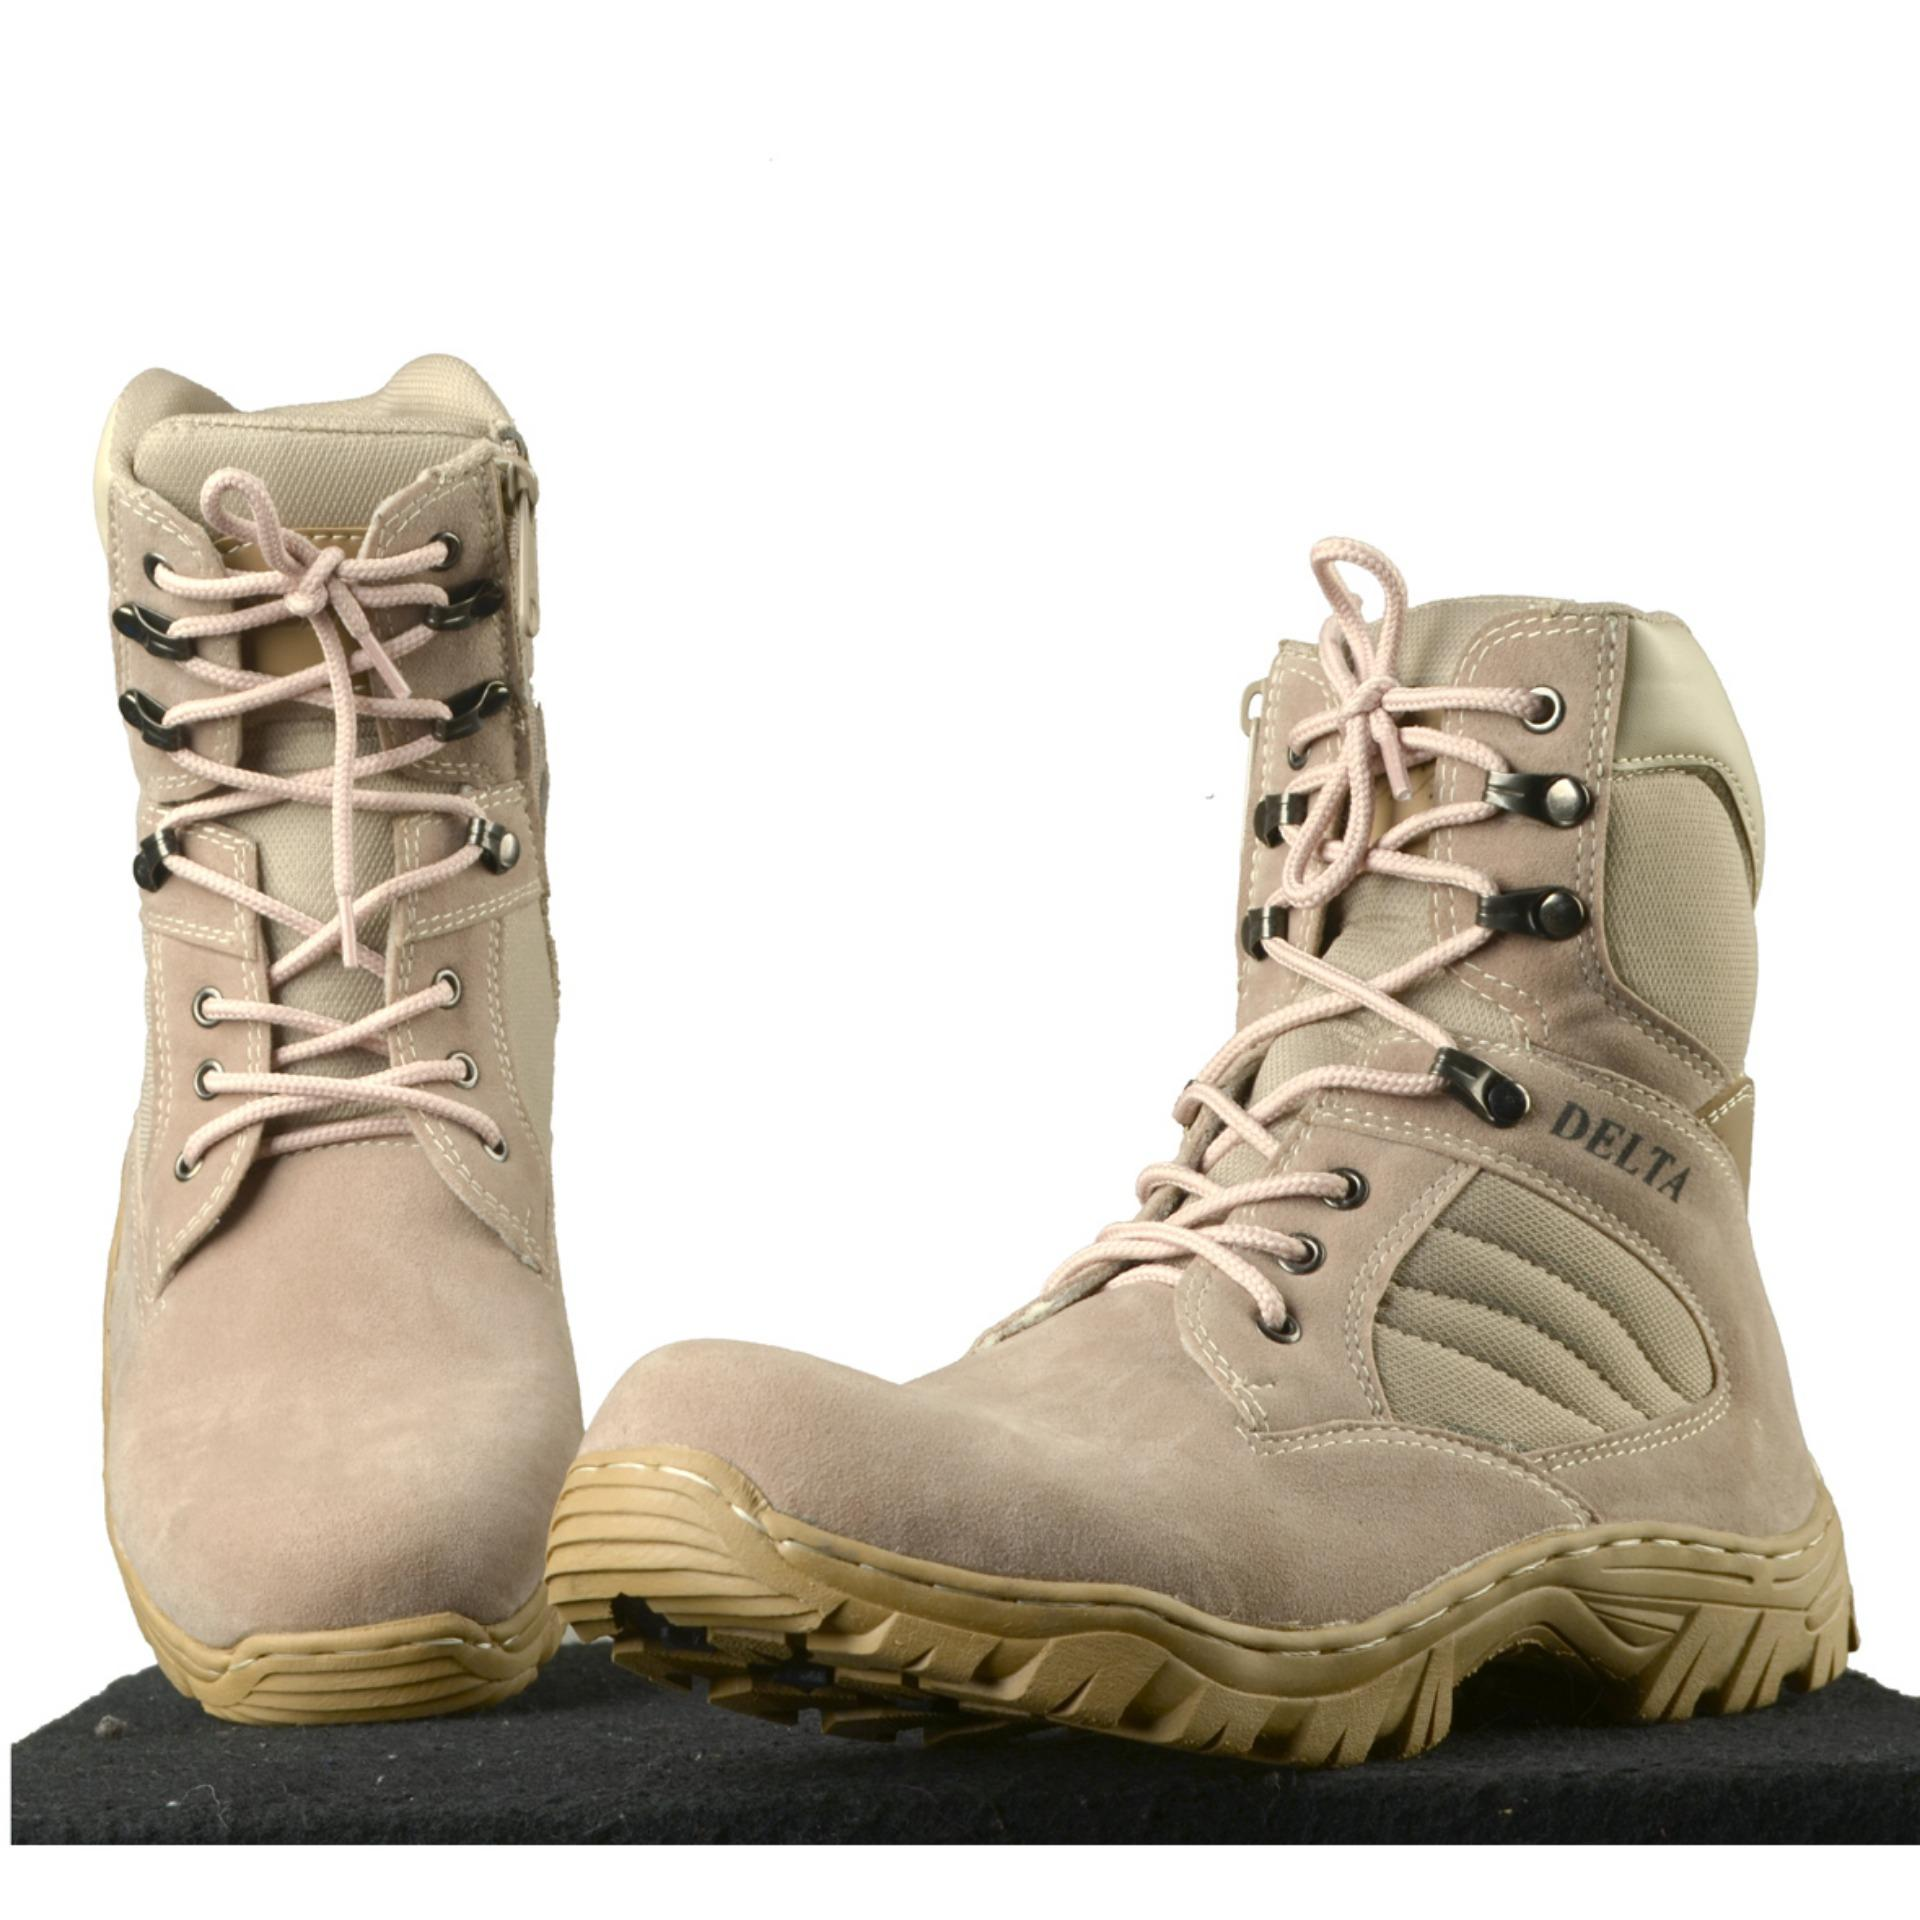 Boots Delta tactical safety c956adf744